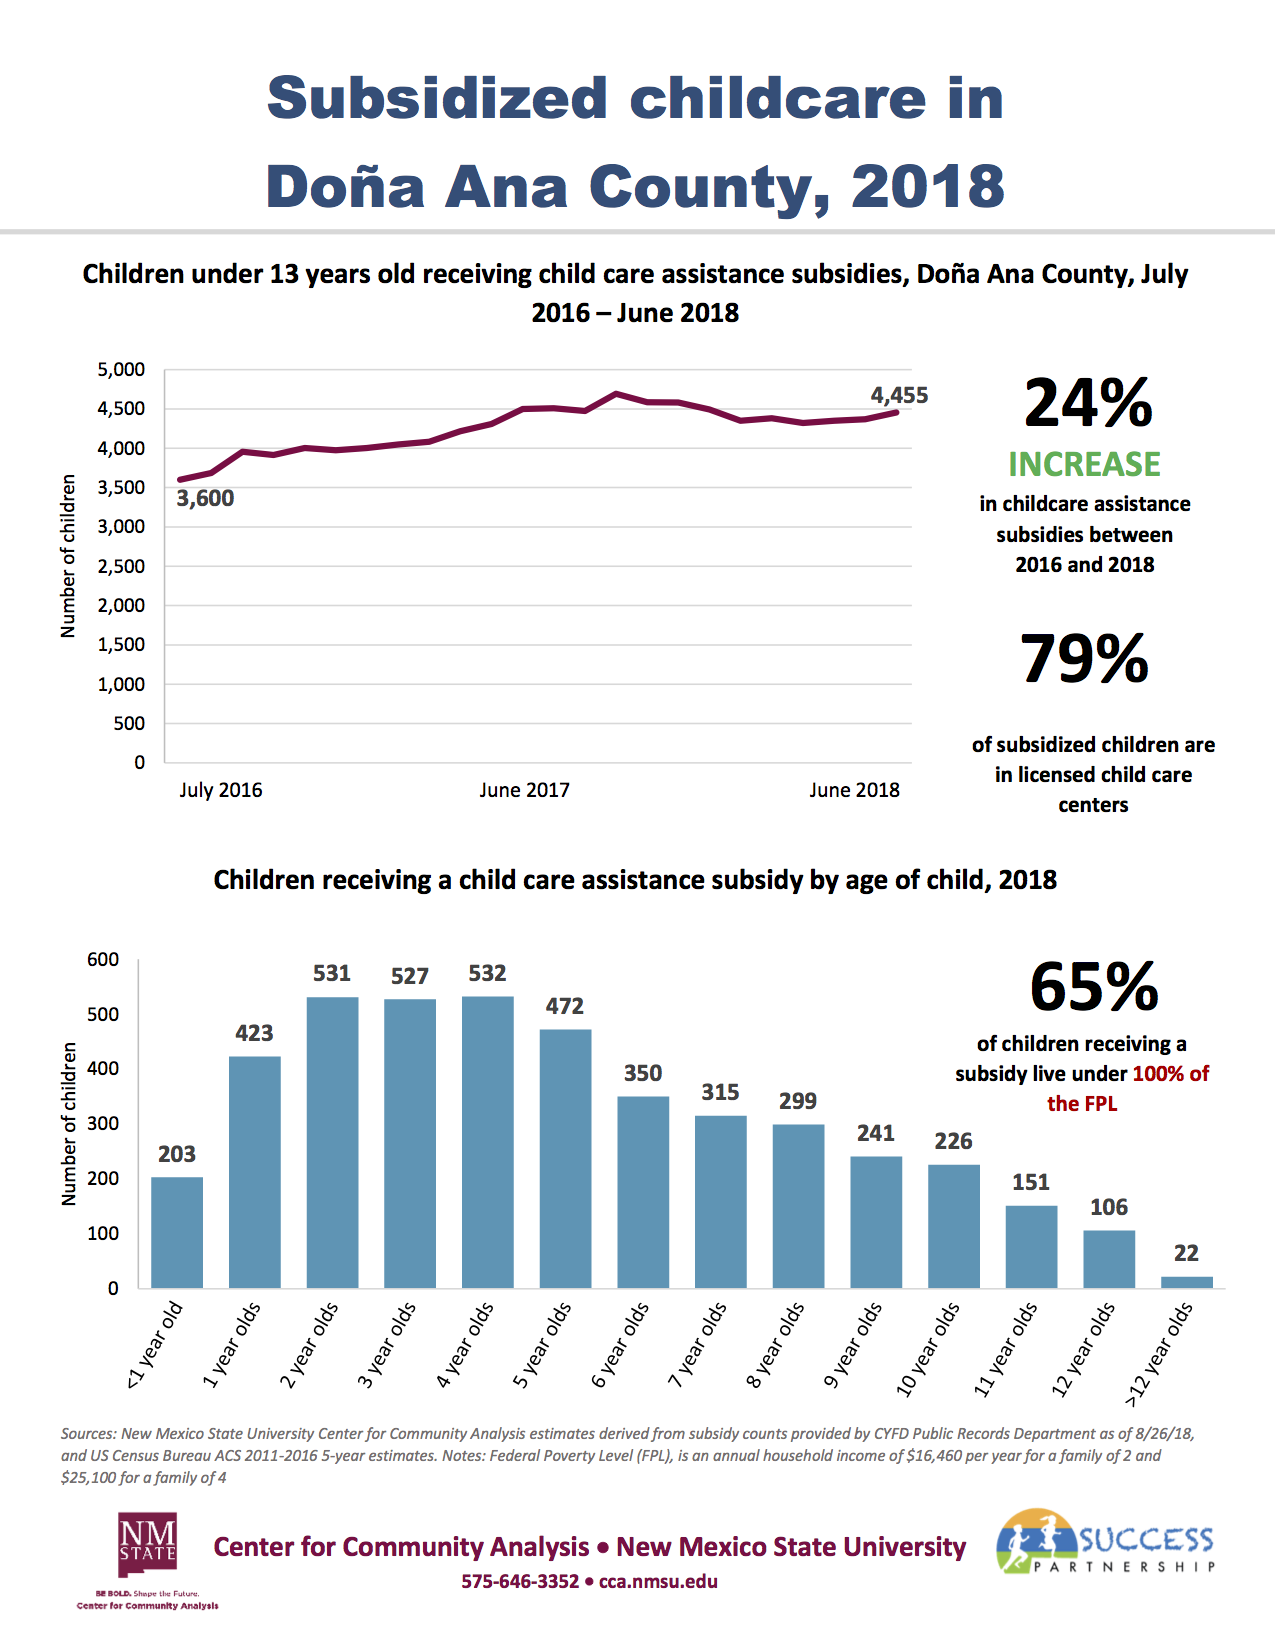 Subsidized Childcare and the ECE Workforce in Doña Ana County